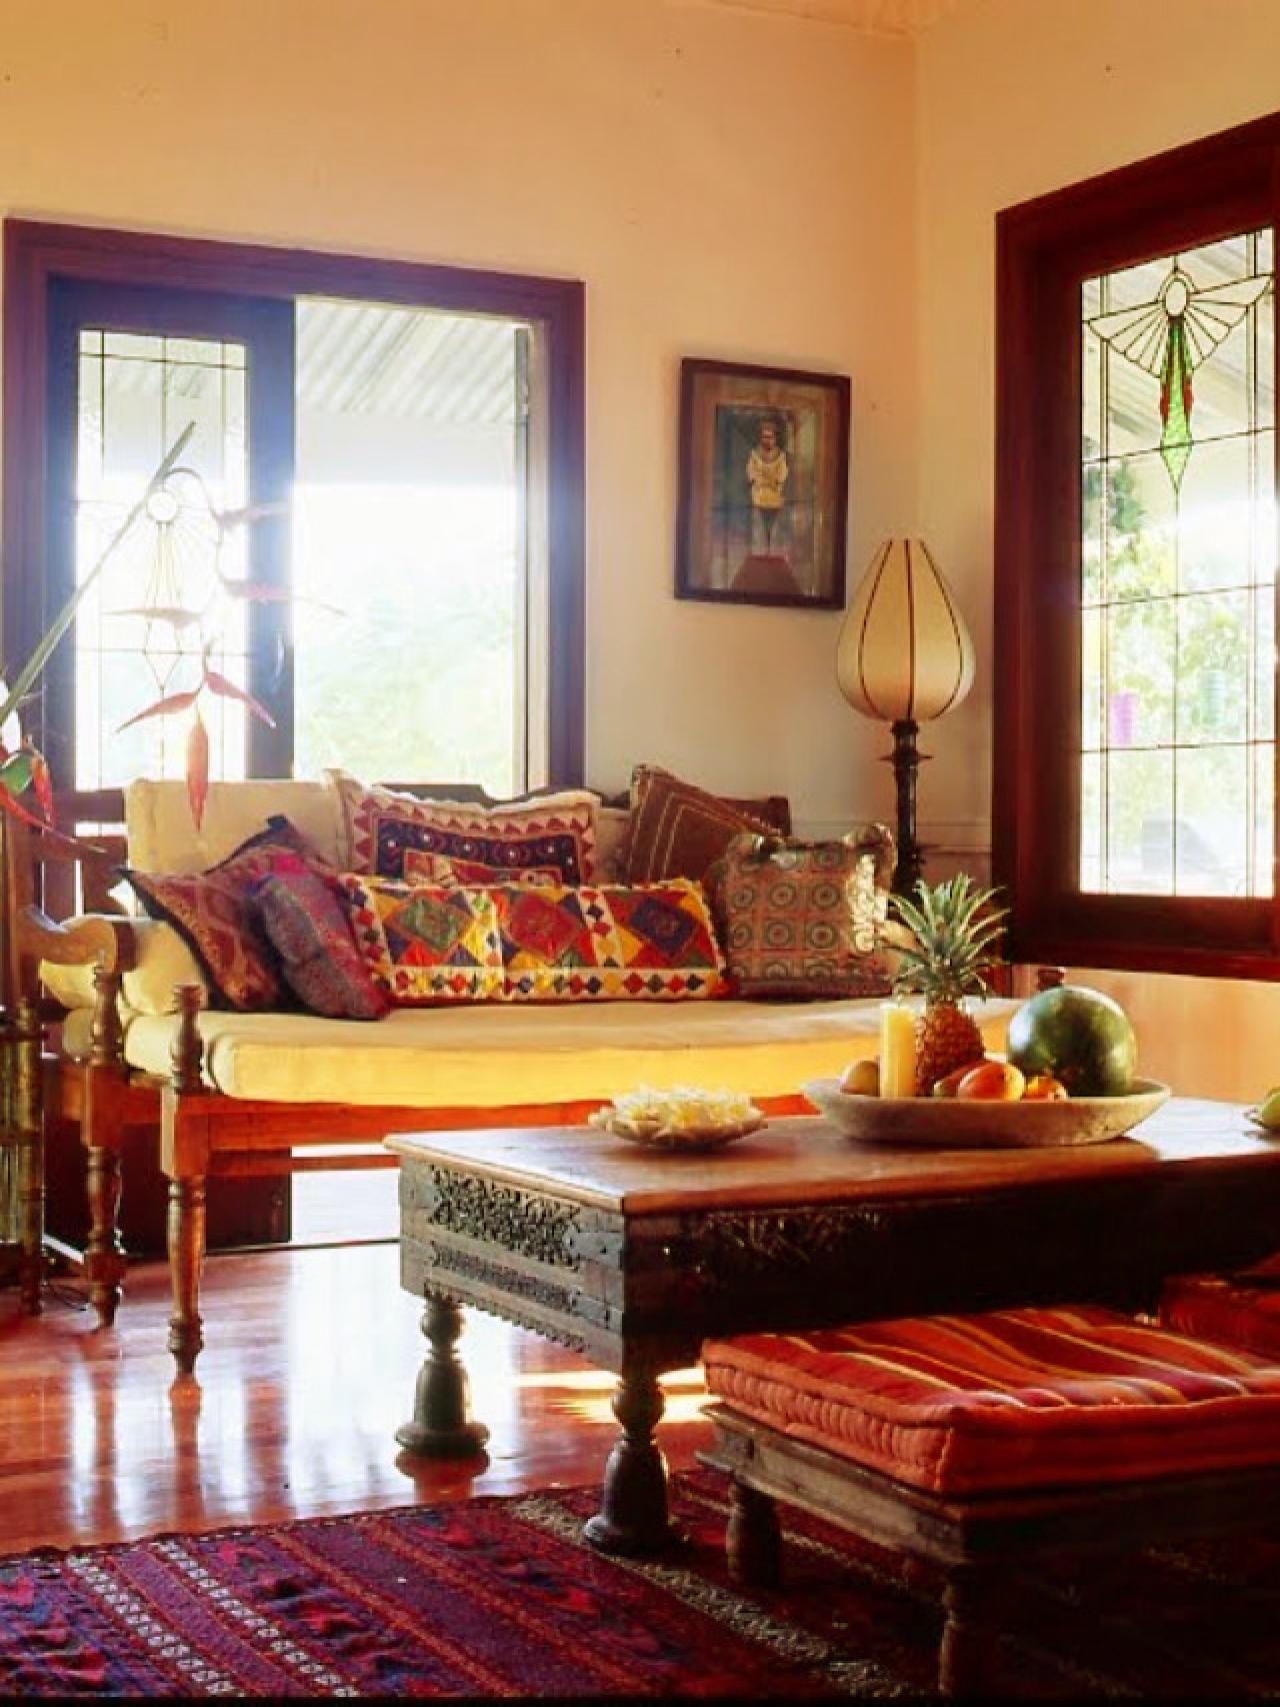 12 Spaces Inspired by India | Interior Design Styles and ...